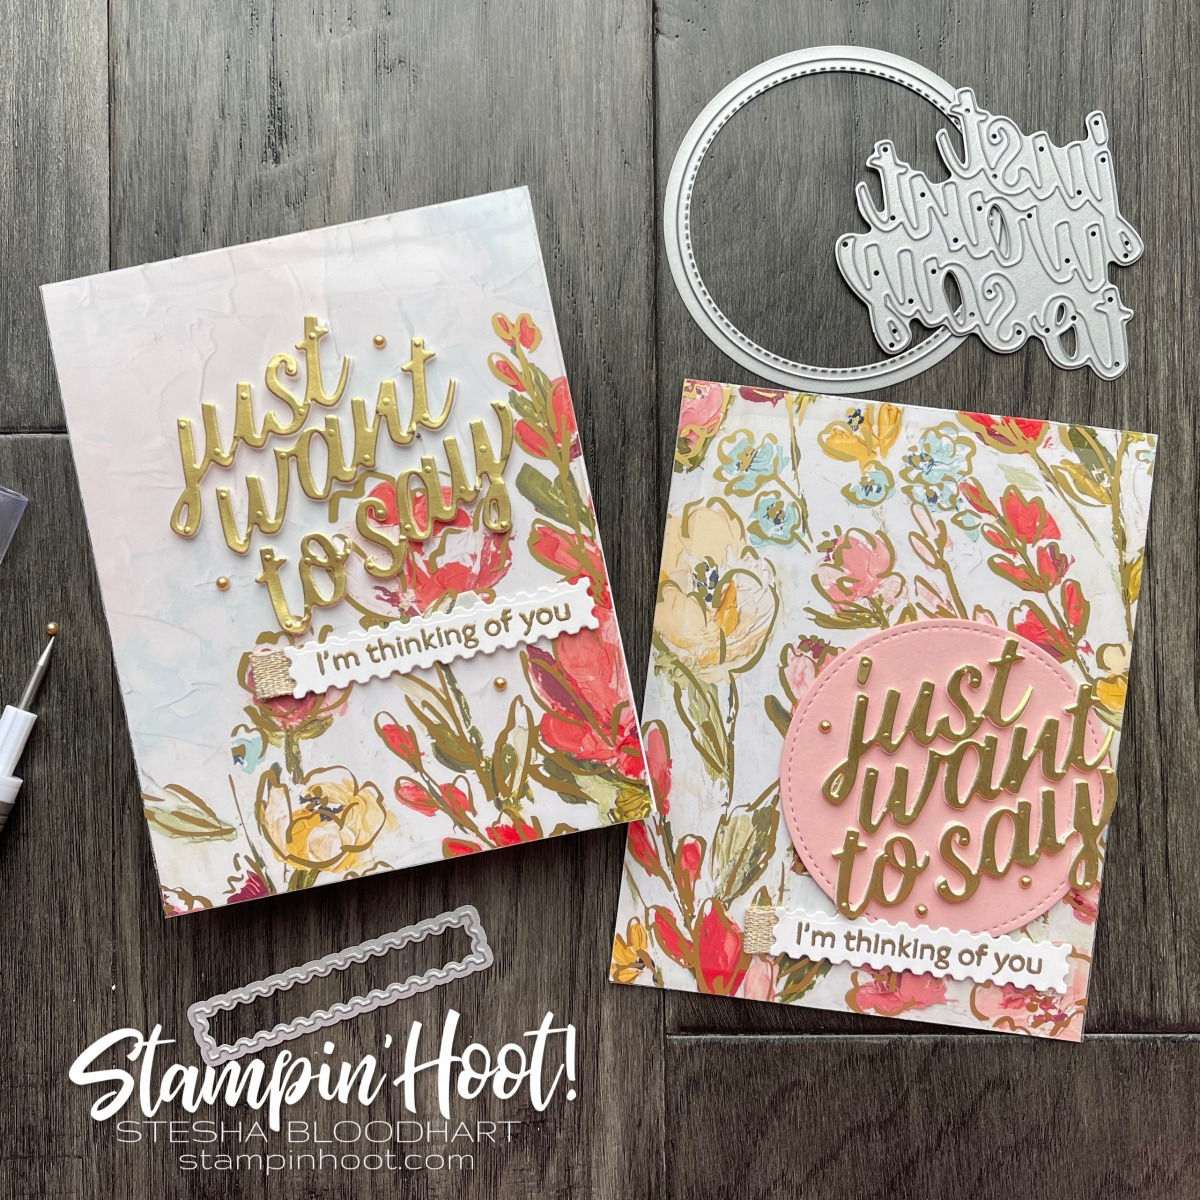 Just Want to Say I'm Thinking of You with Art Gallery Bundle from Stampin' Up! Cards by Stesha Bloodhart, Stampin' Hoot!